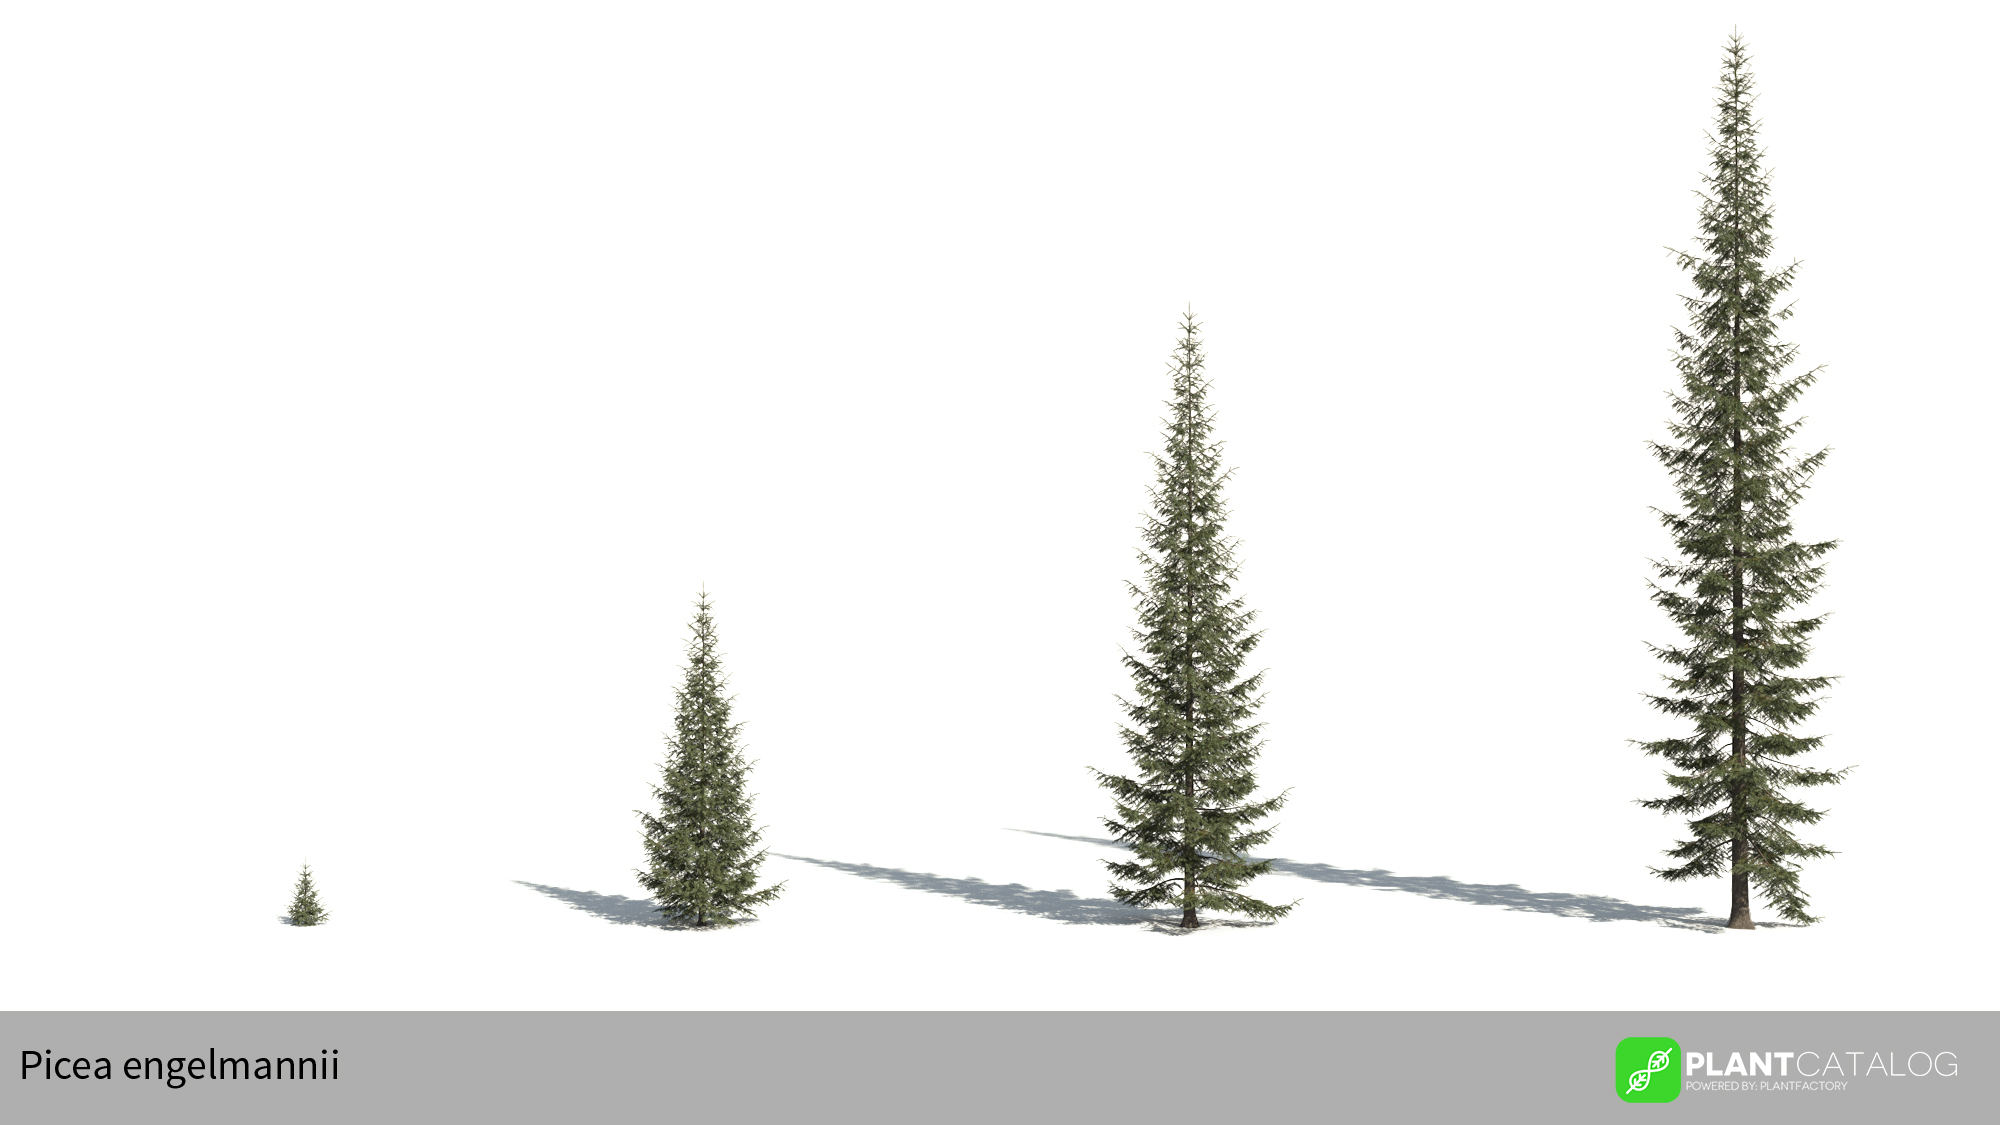 3D model of the Engelmann spruce - Picea engelmannii - from the PlantCatalog, rendered in VUE